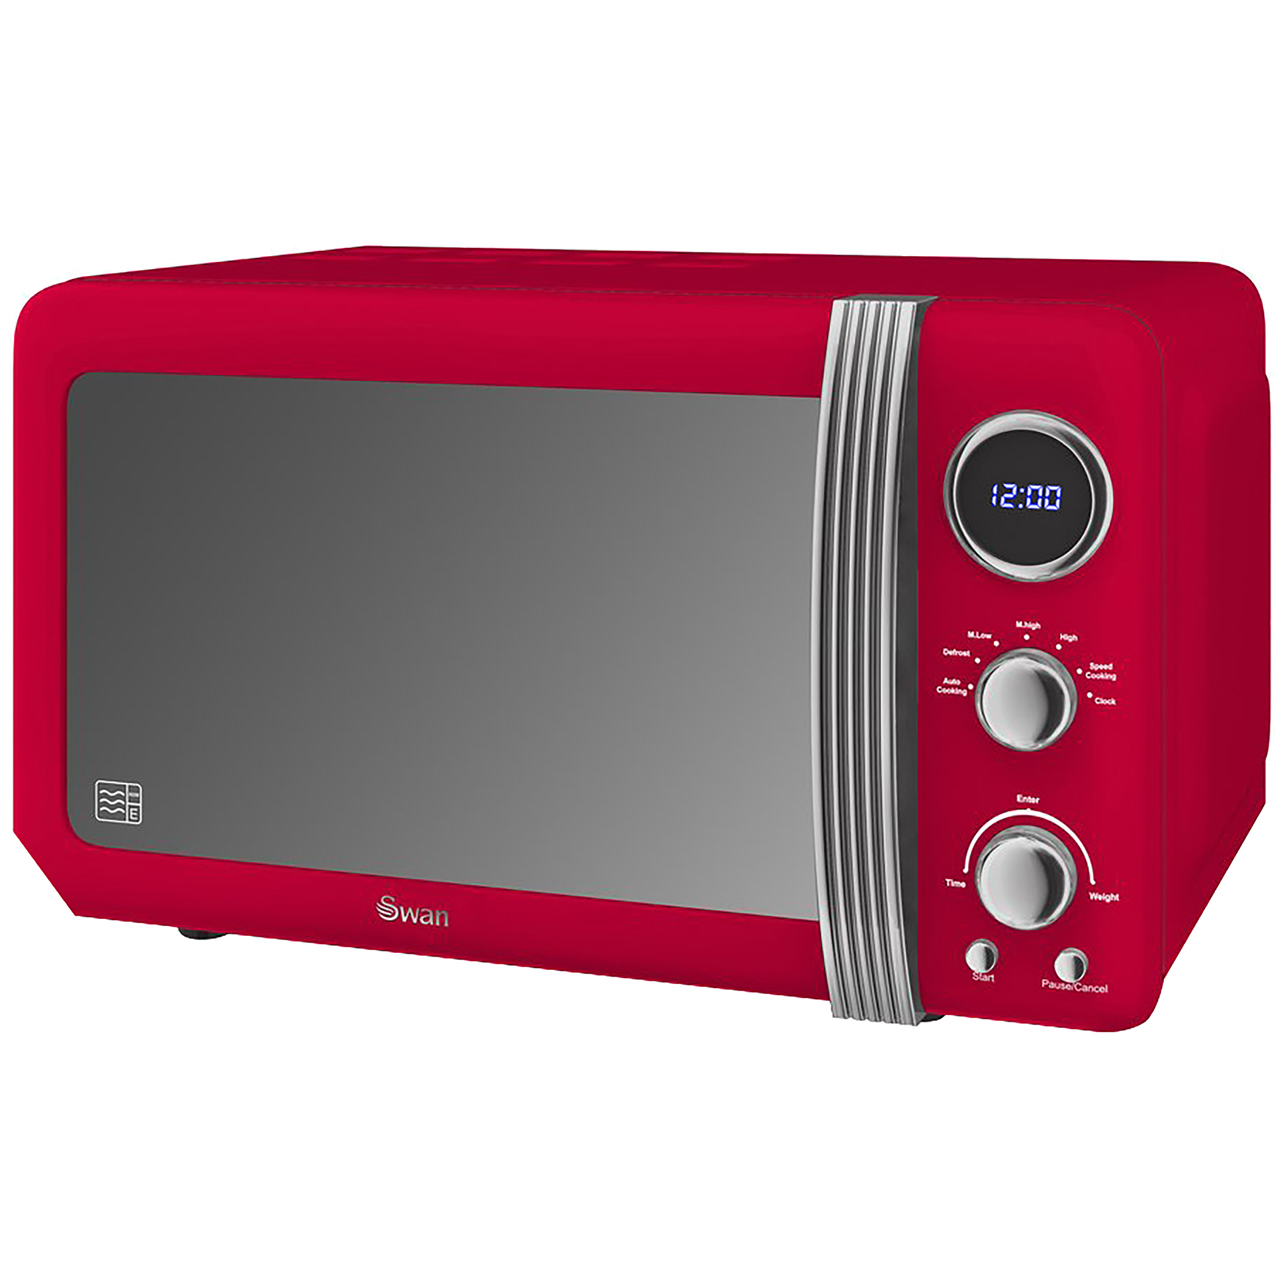 Swan Retro Sm22030rn 20 Litre Microwave Red Rd 1